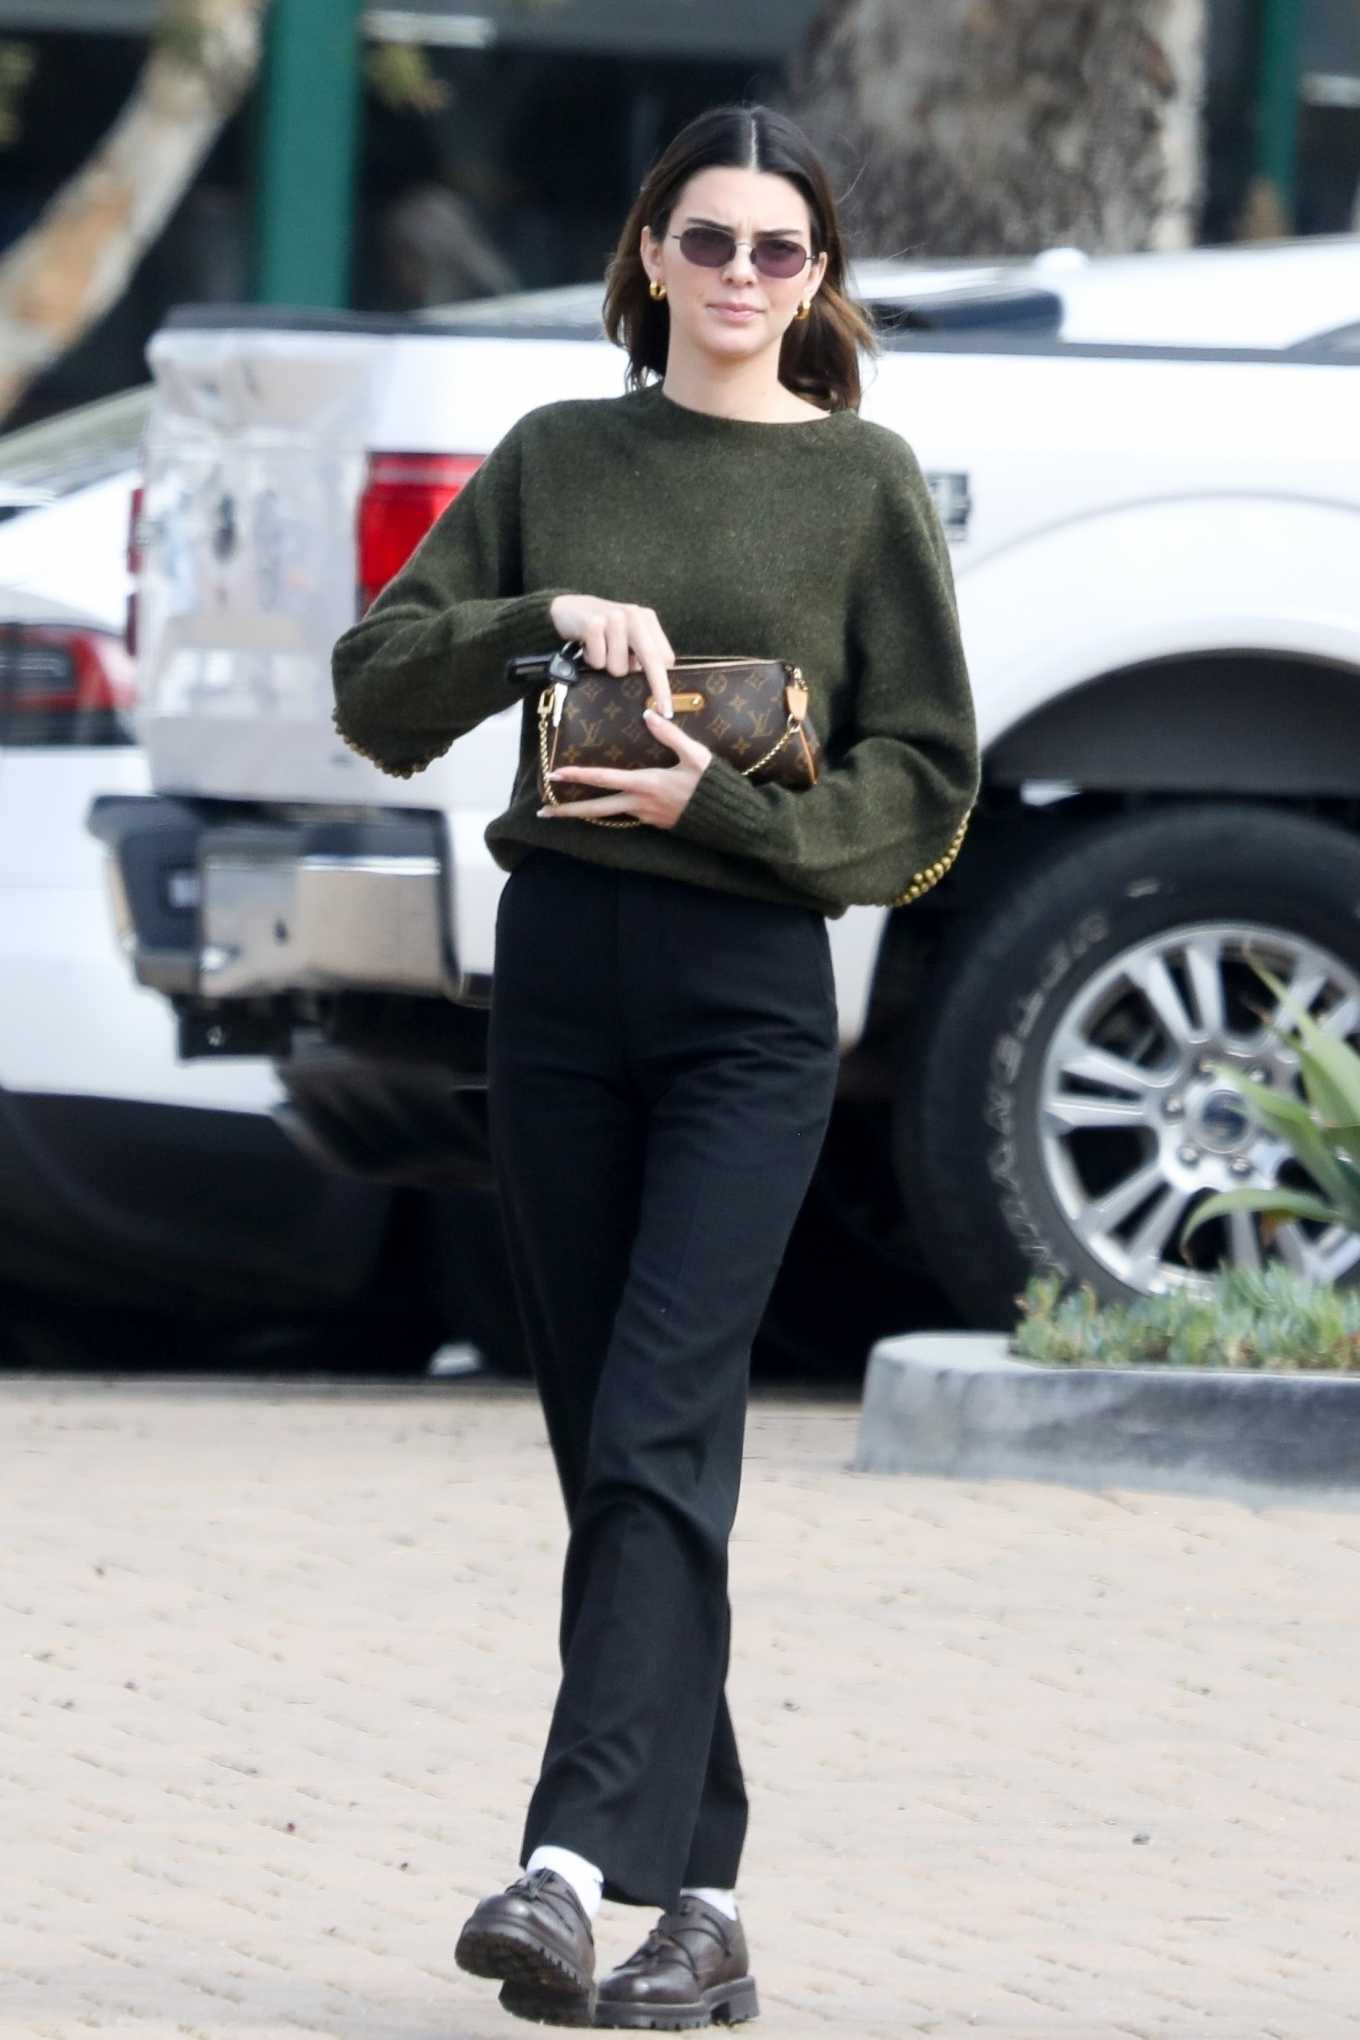 Kendall Jenner rocking a Dark bottle green woolen sweater with a woolen fabric, full sleeves, embellished and a crew neck